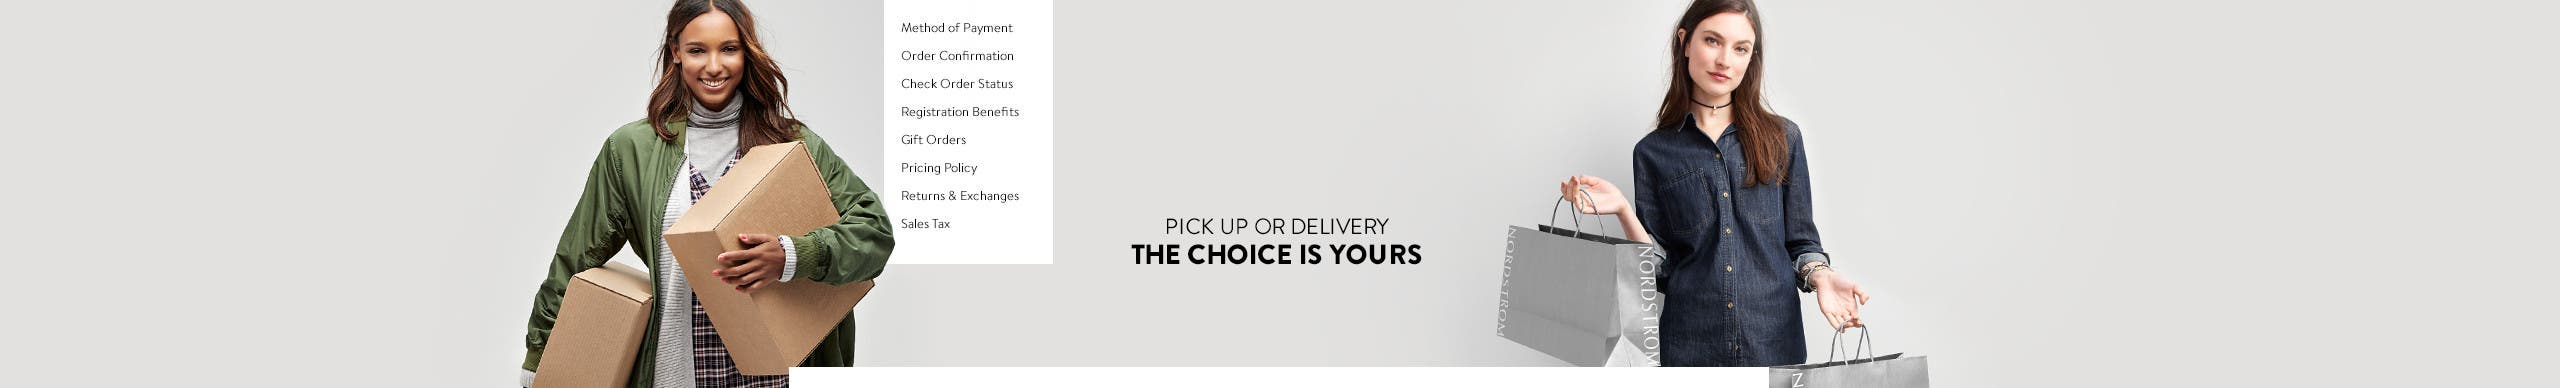 Pickup or Delivery. The Choice Is Yours.